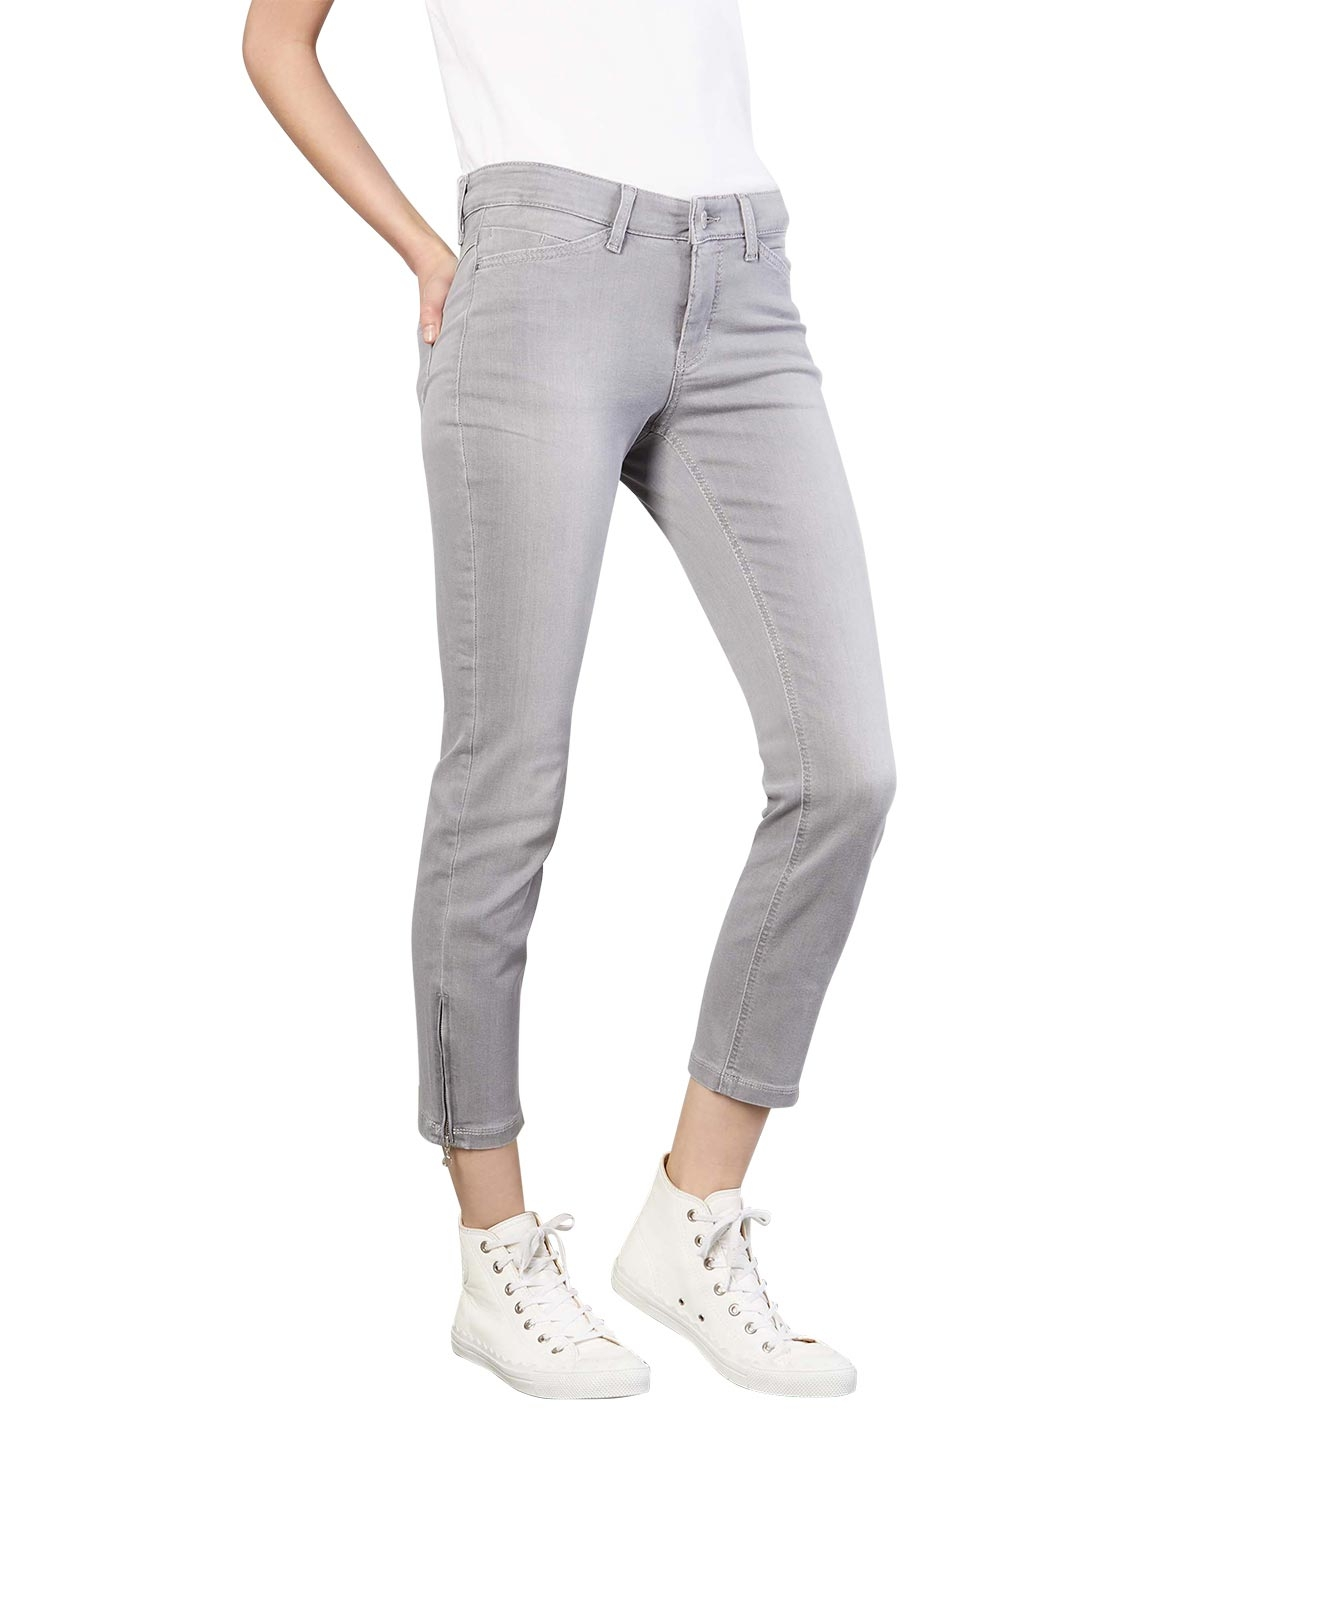 Hosen - MAC Ankle Jeans Dream Chic in Silver Grey Used  - Onlineshop Jeans Meile